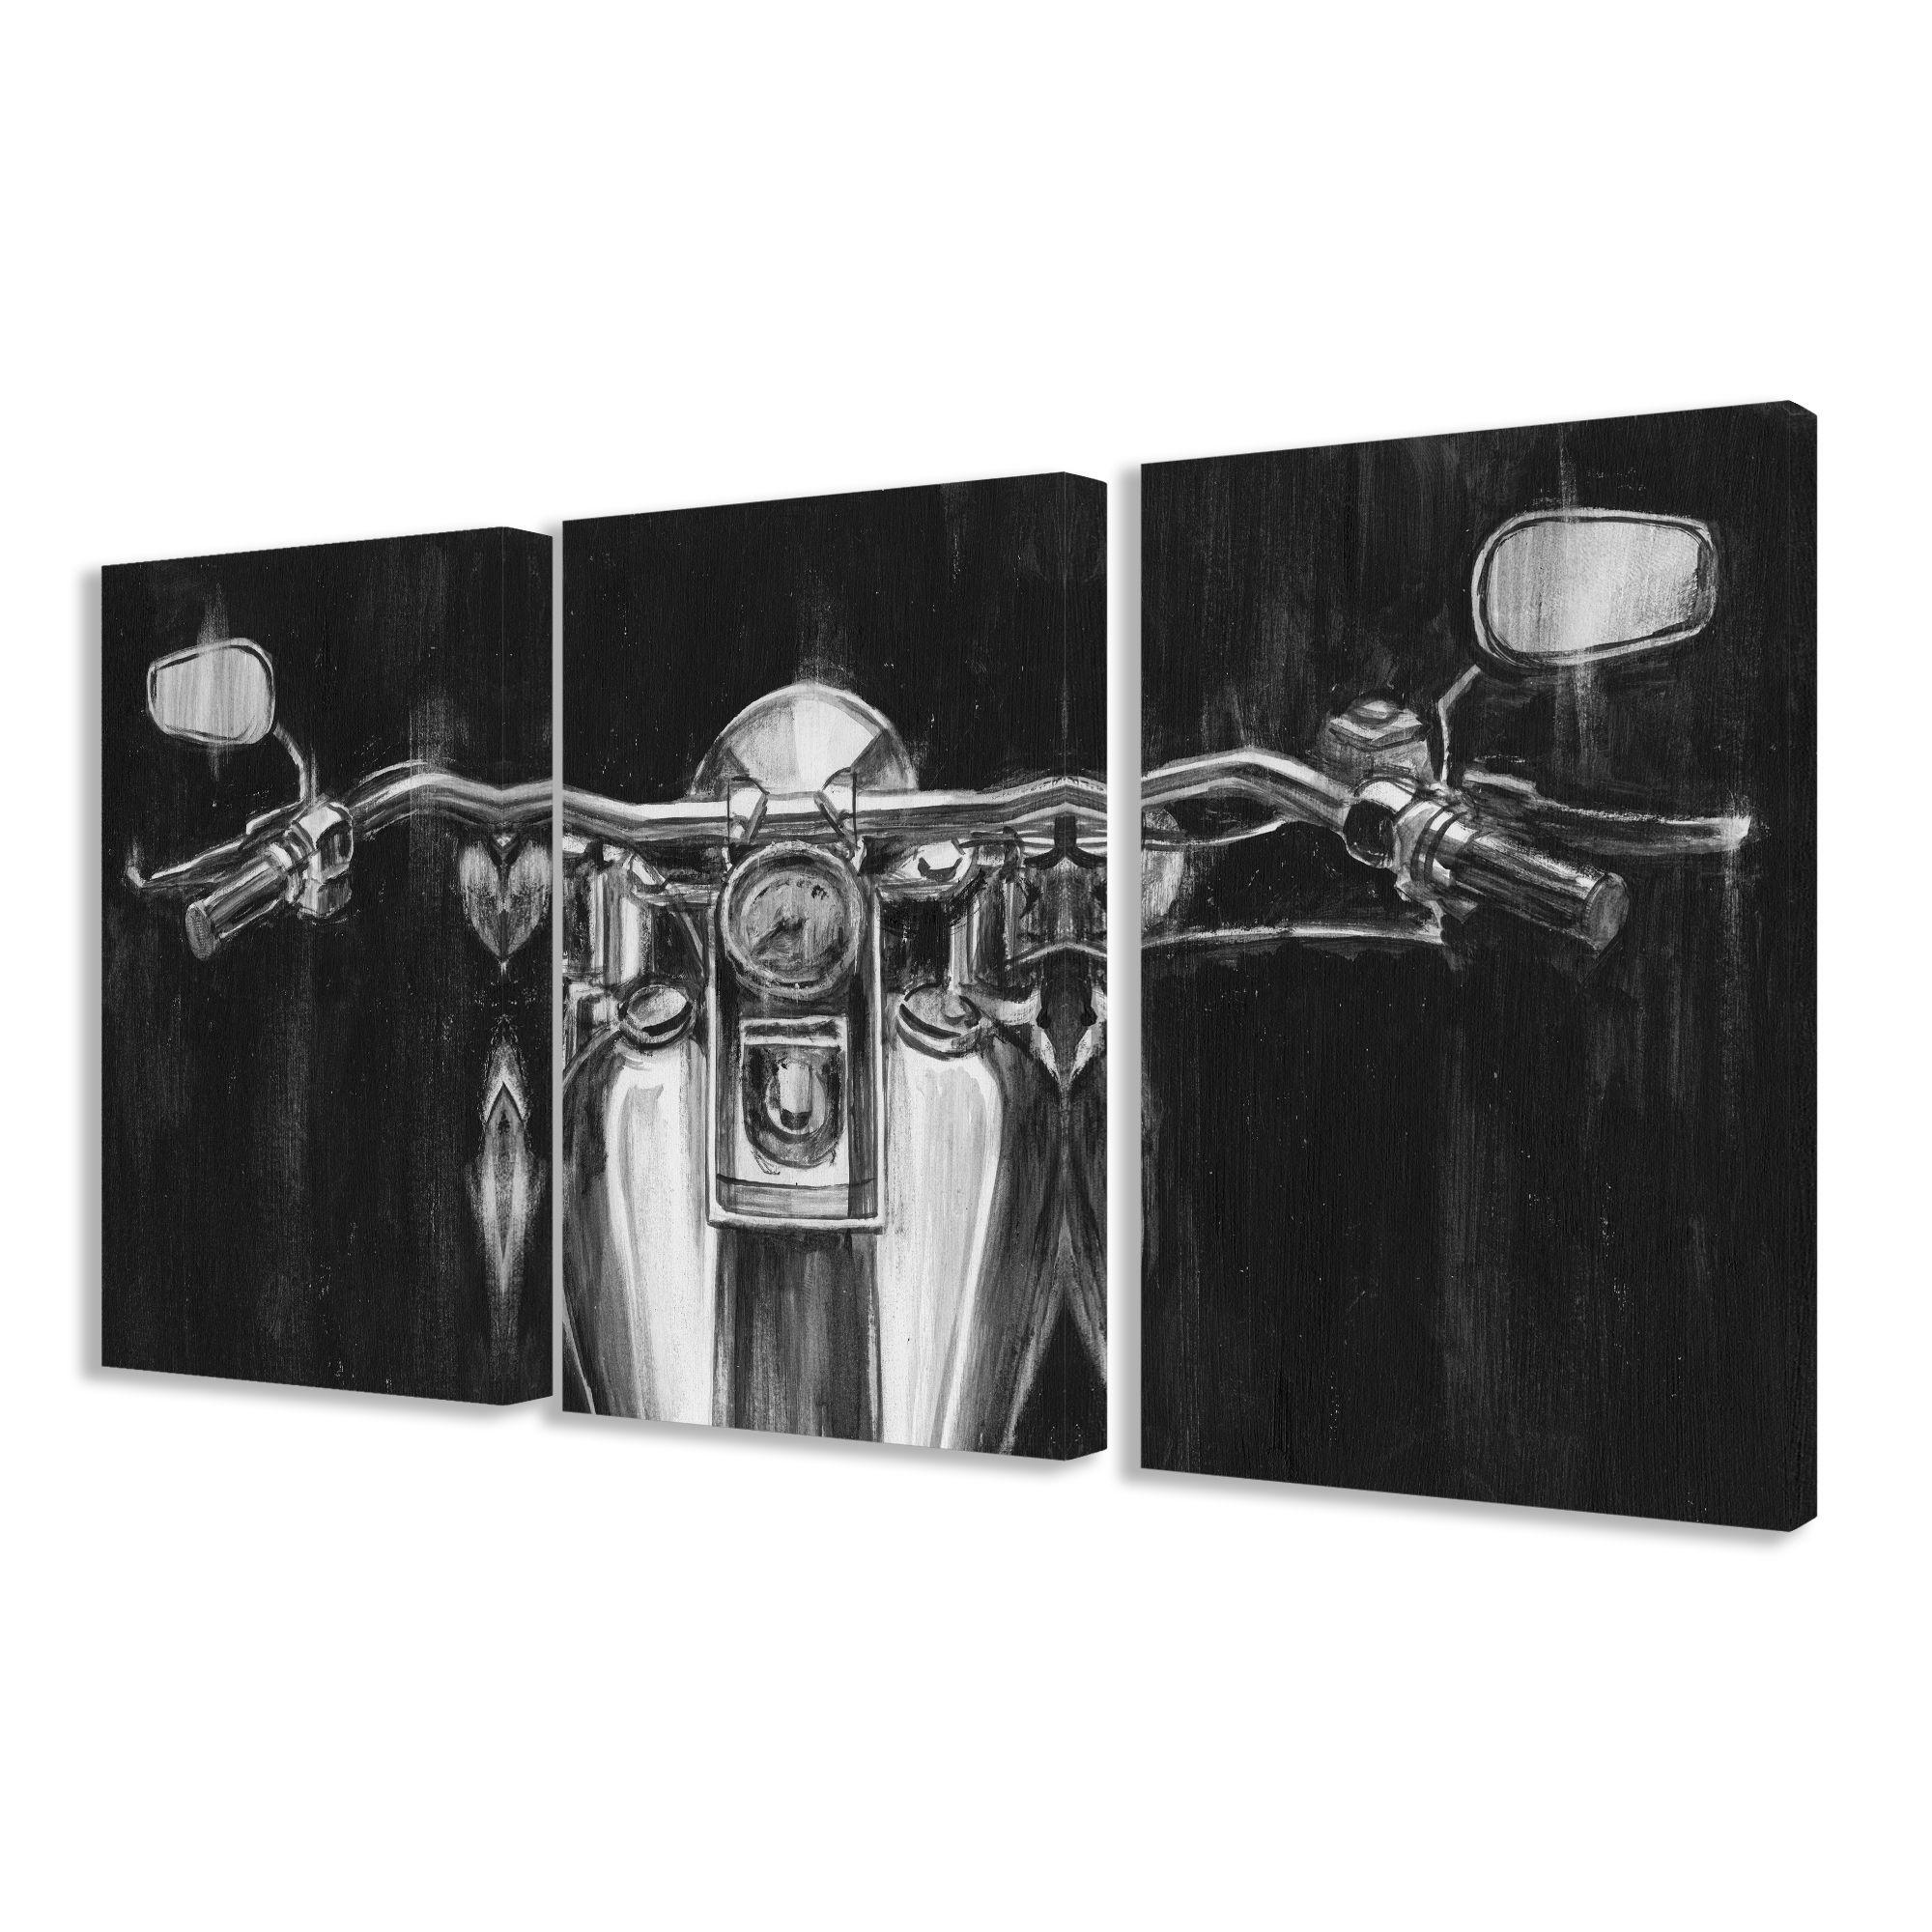 Modernize Your Man Cave With This Black And White Motorcycle Canvas Set Featuring An Expansive Monochromatic Portrait Of A Across Three Canvases